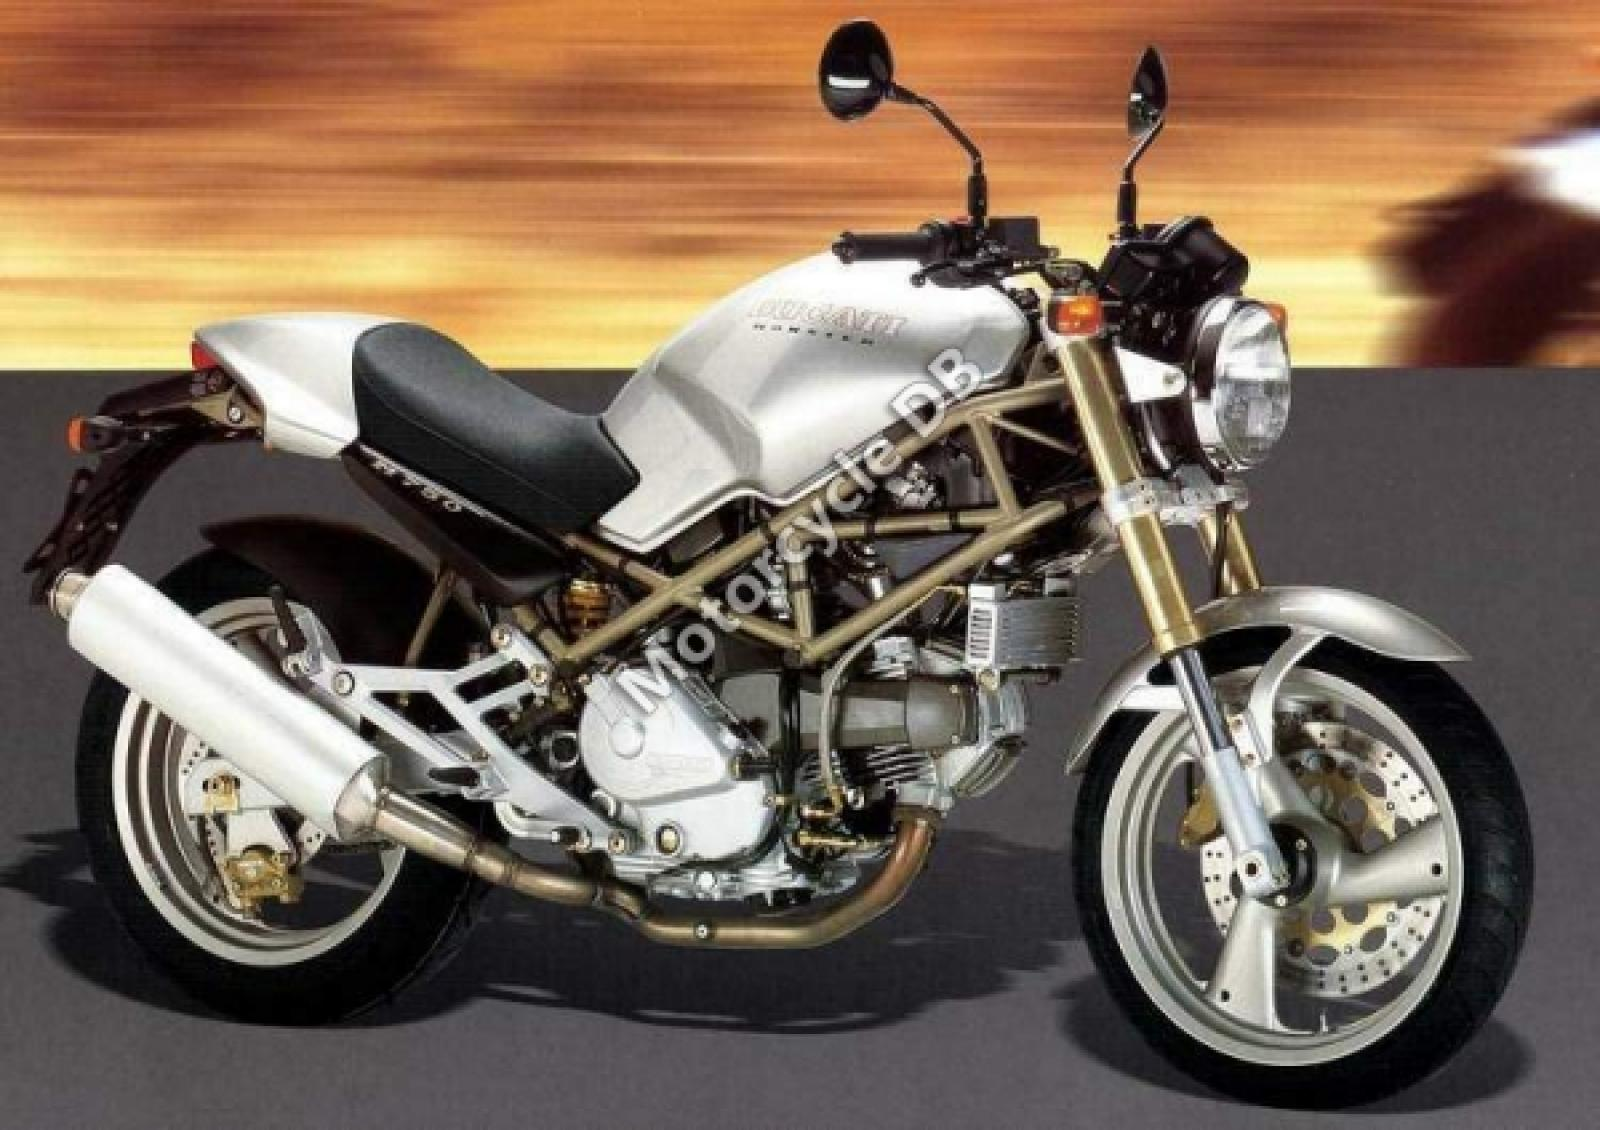 Ducati Monster 750 2000 wallpapers #10915